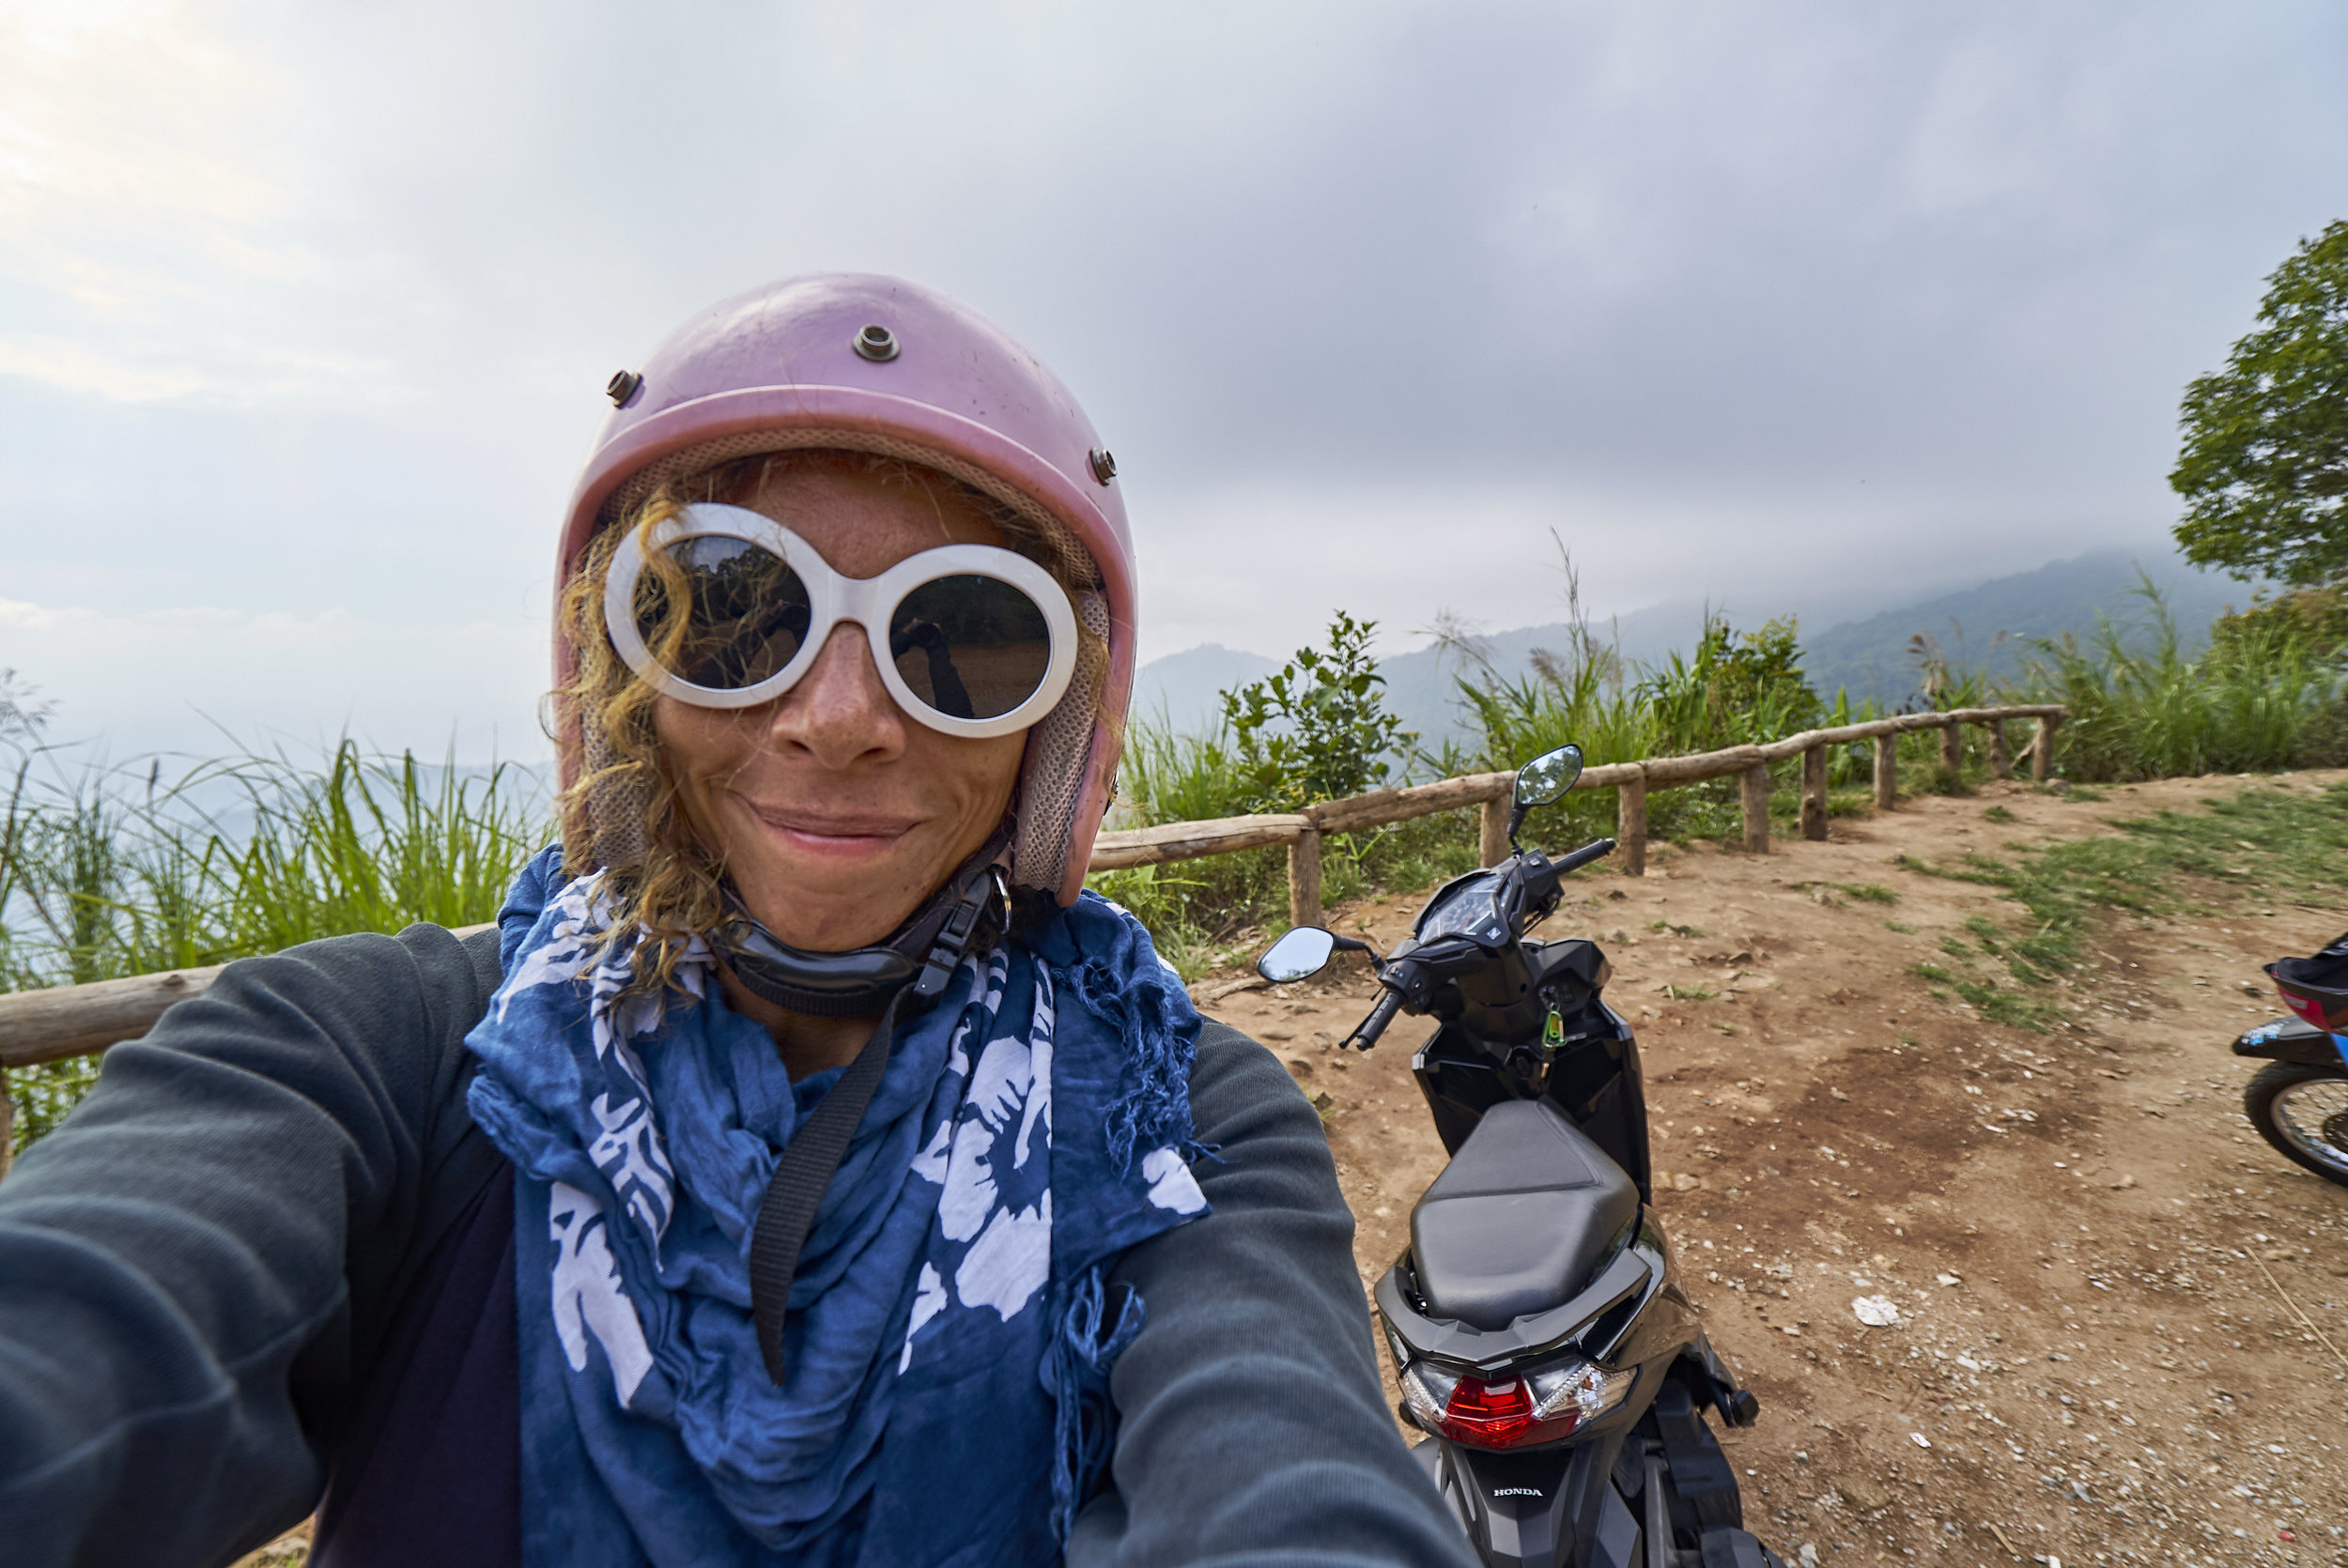 Yours truly, during my ride on the Samoeng Loop